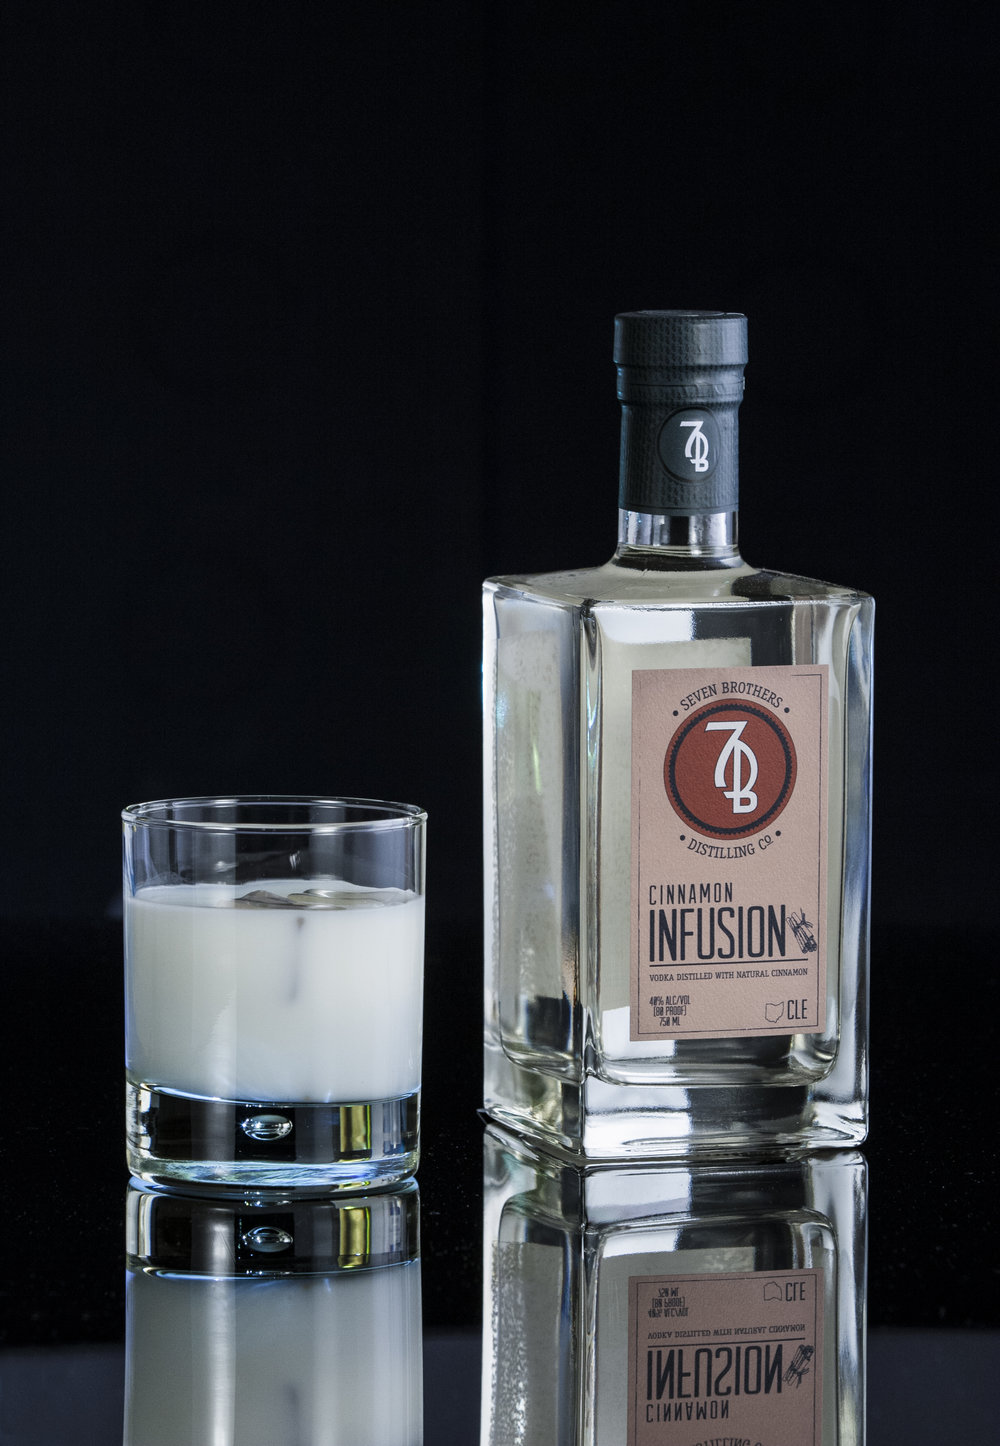 BROTHERS BADGER - 1.5 oz Seven Brothers Cinnamon Infusion.75 oz Heavy Cream.75 oz HoneyShake over ice and strain into a Rocks glass.